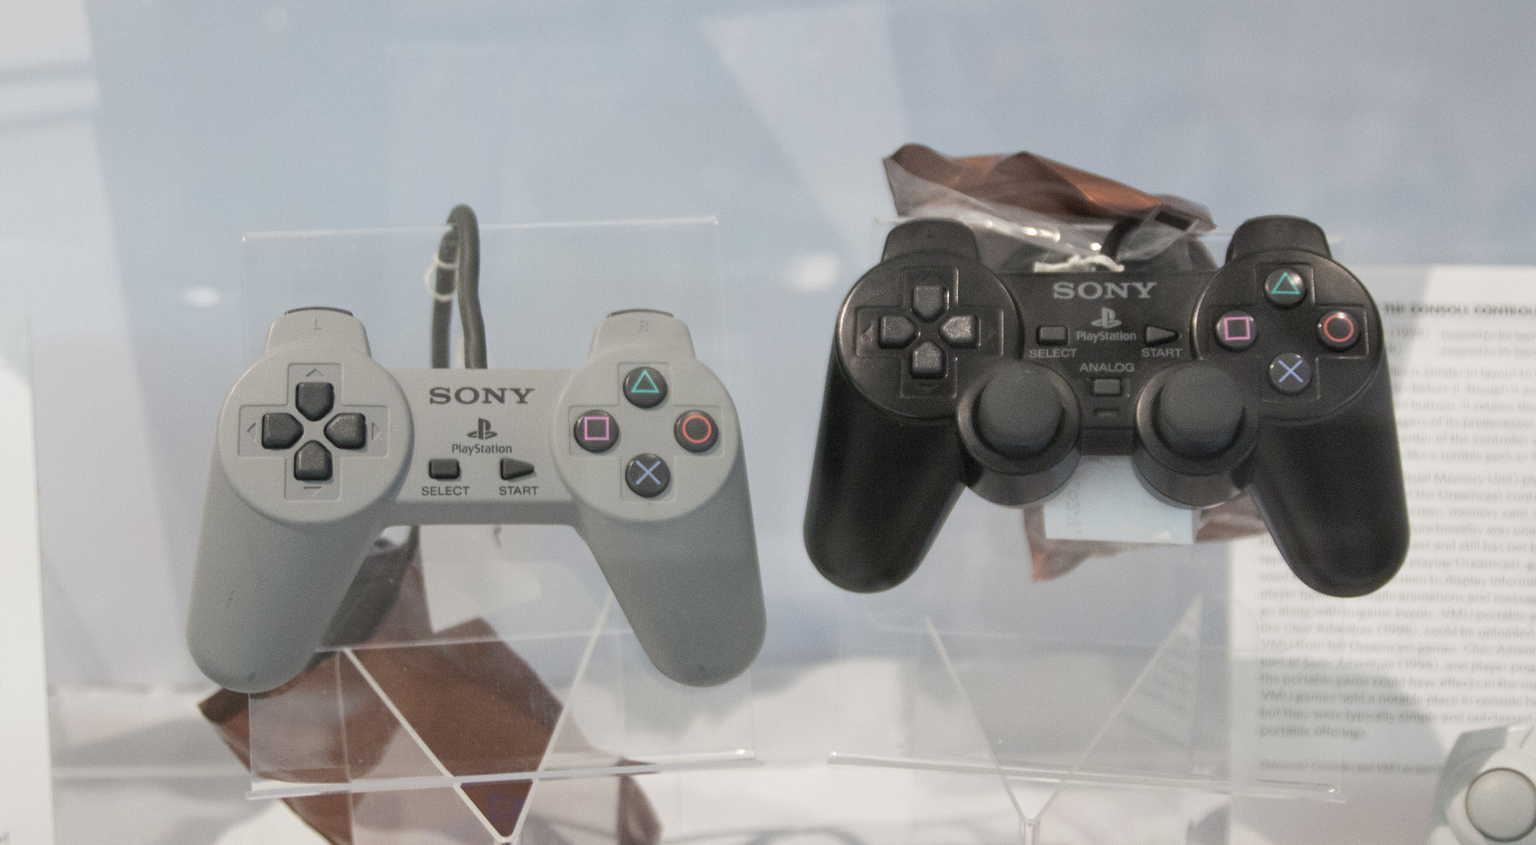 sony playstation 1994. evolution of the console controller \u2013 playstation (1994), dualshock (1997) sony playstation 1994